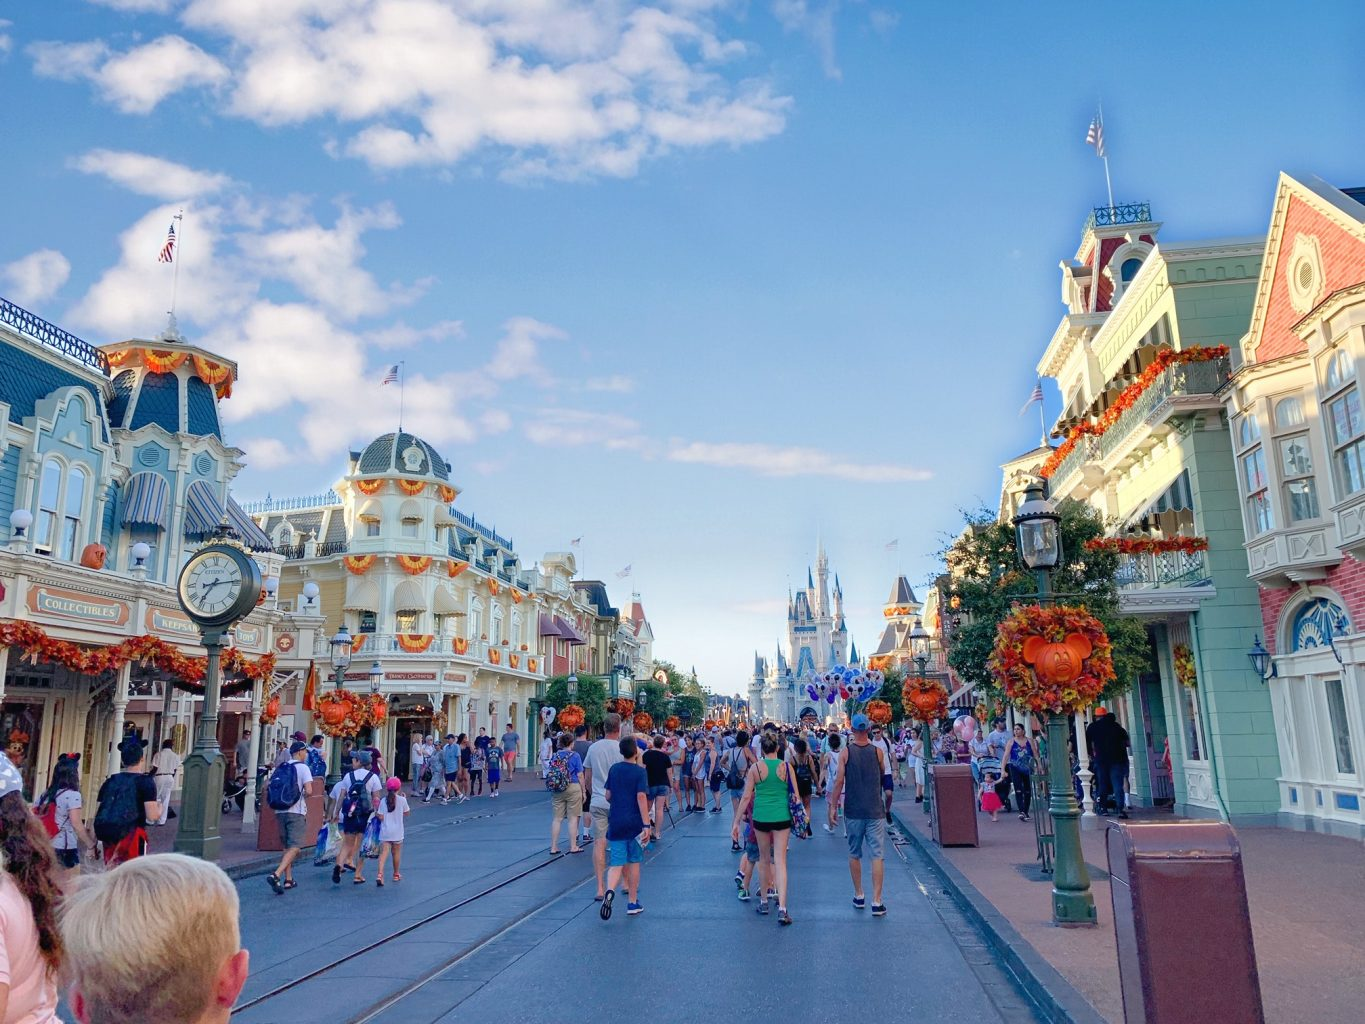 Photo of crowded streets that will not be so crowded if you use our Disney World Crowd Calendar wisely.